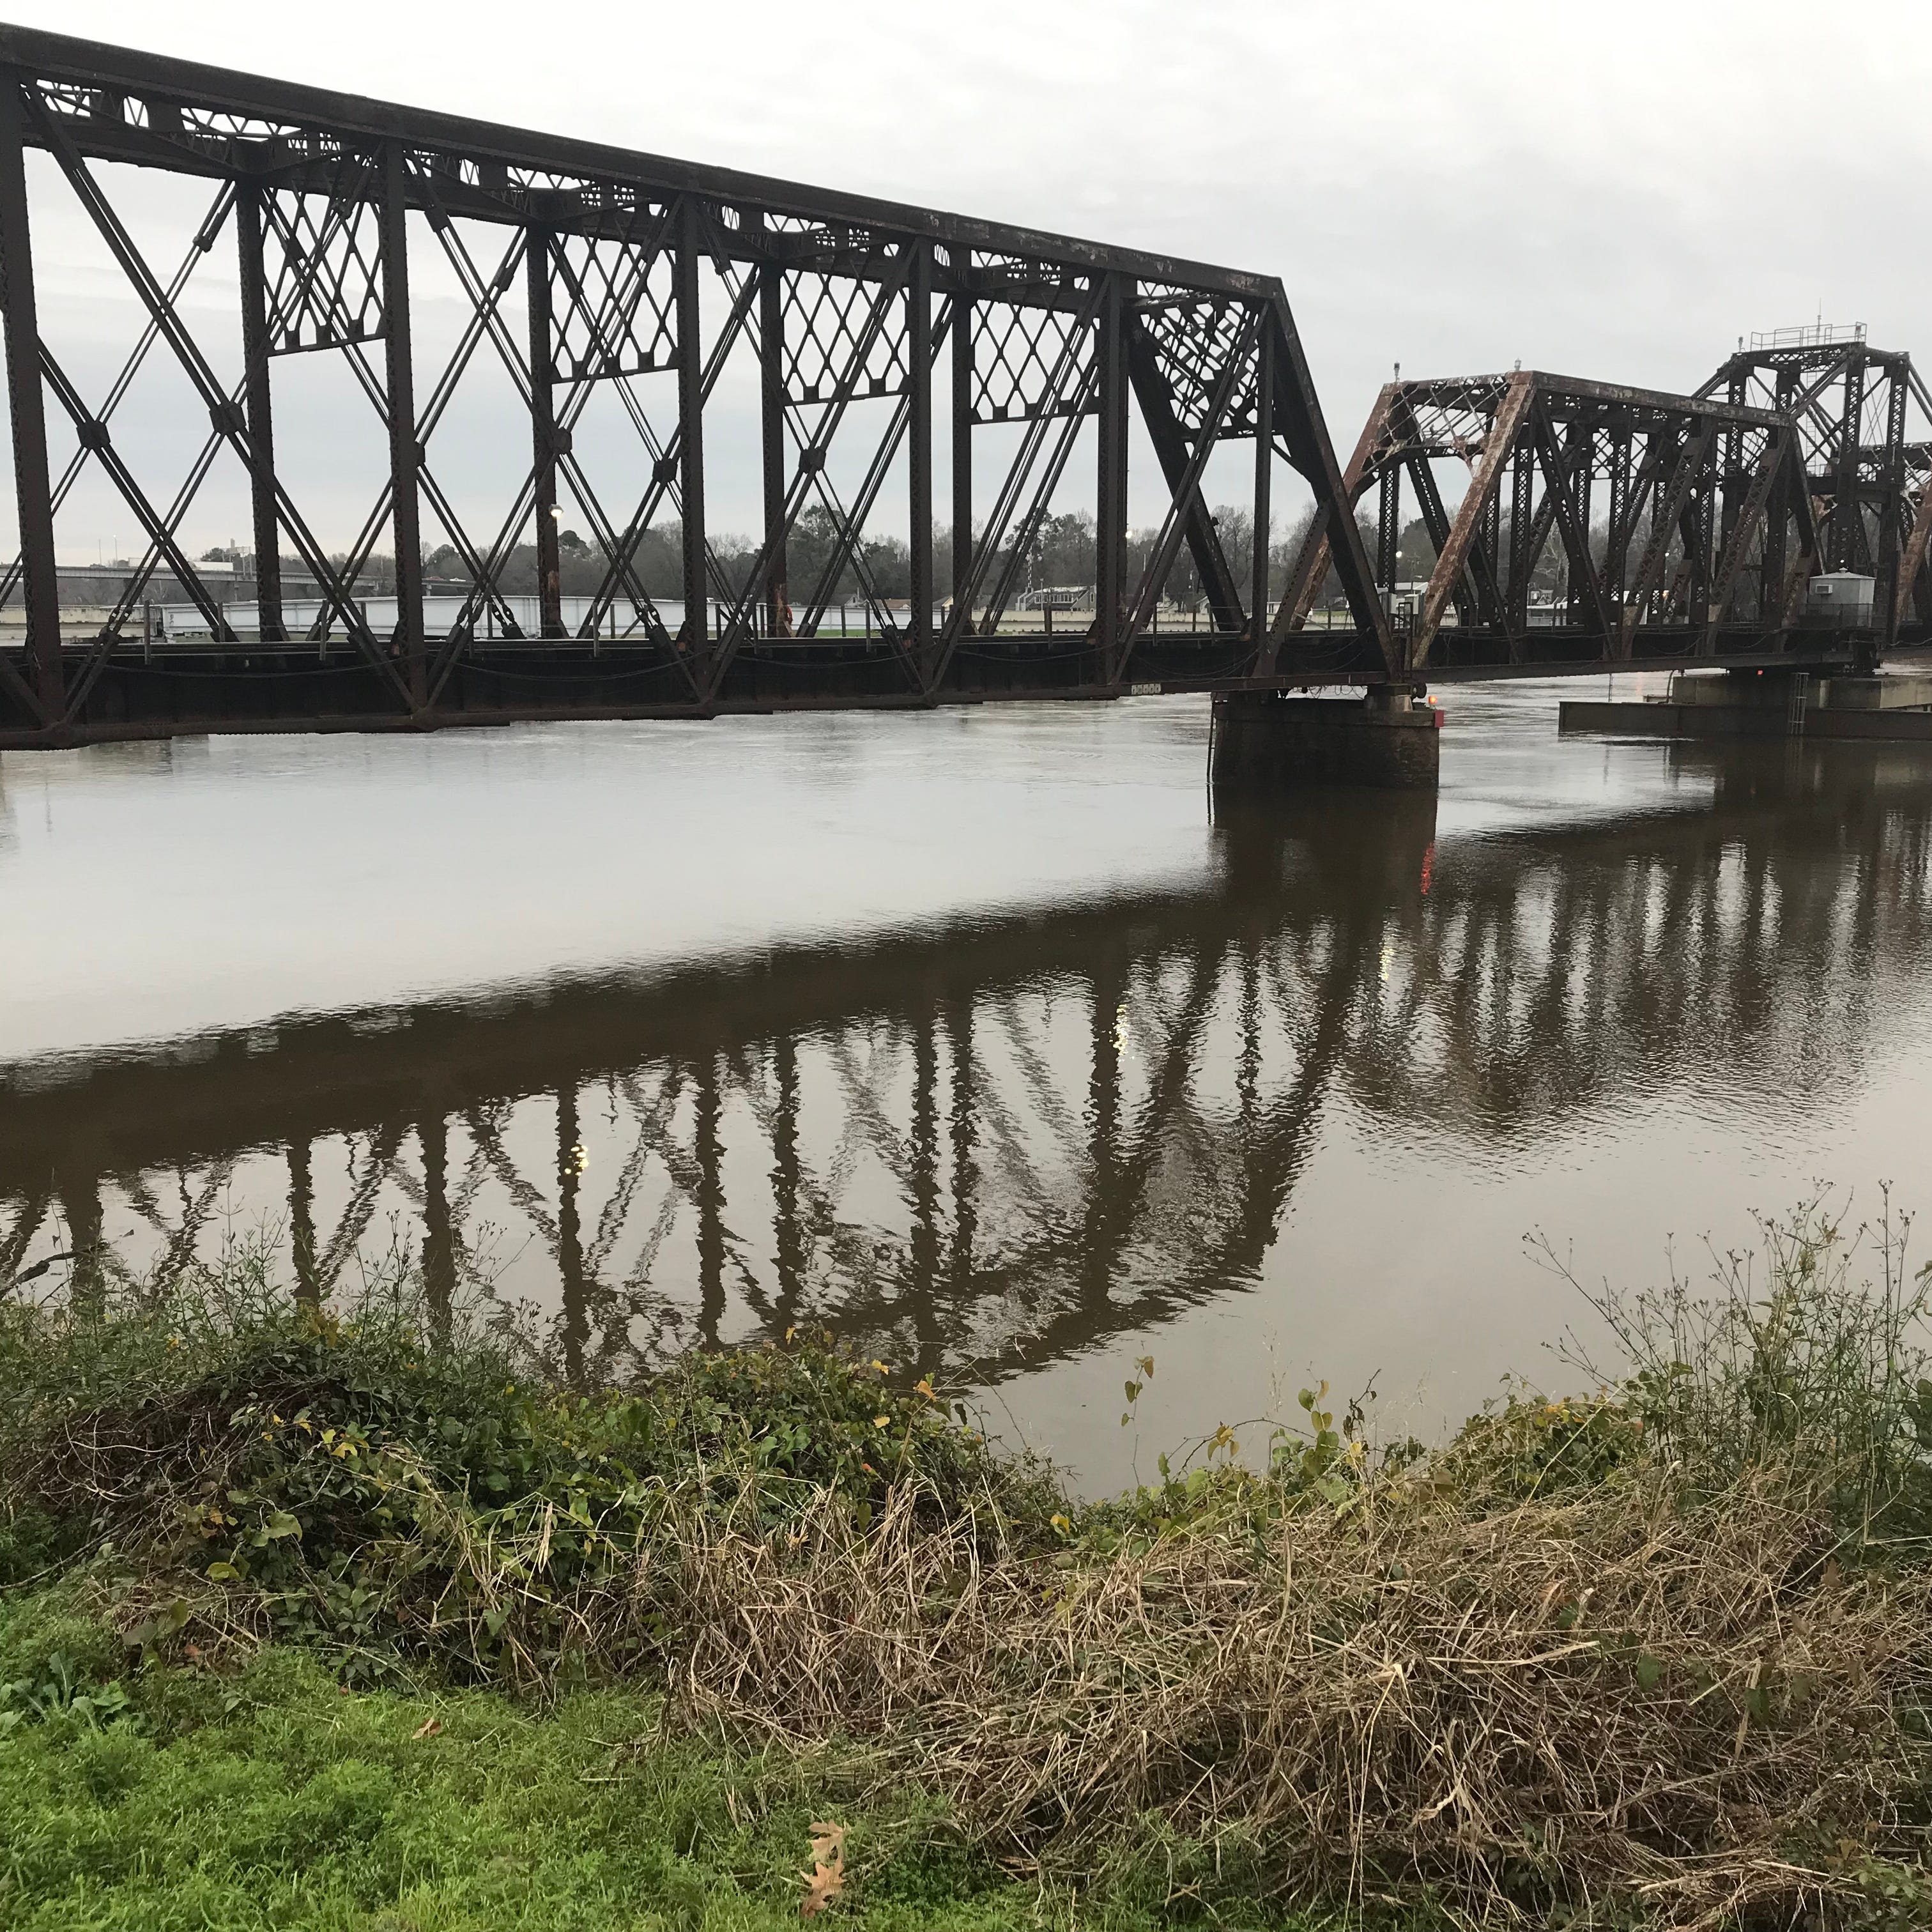 The Ouachita River is among the rivers and streams in Louisiana already swollen with rainfall.